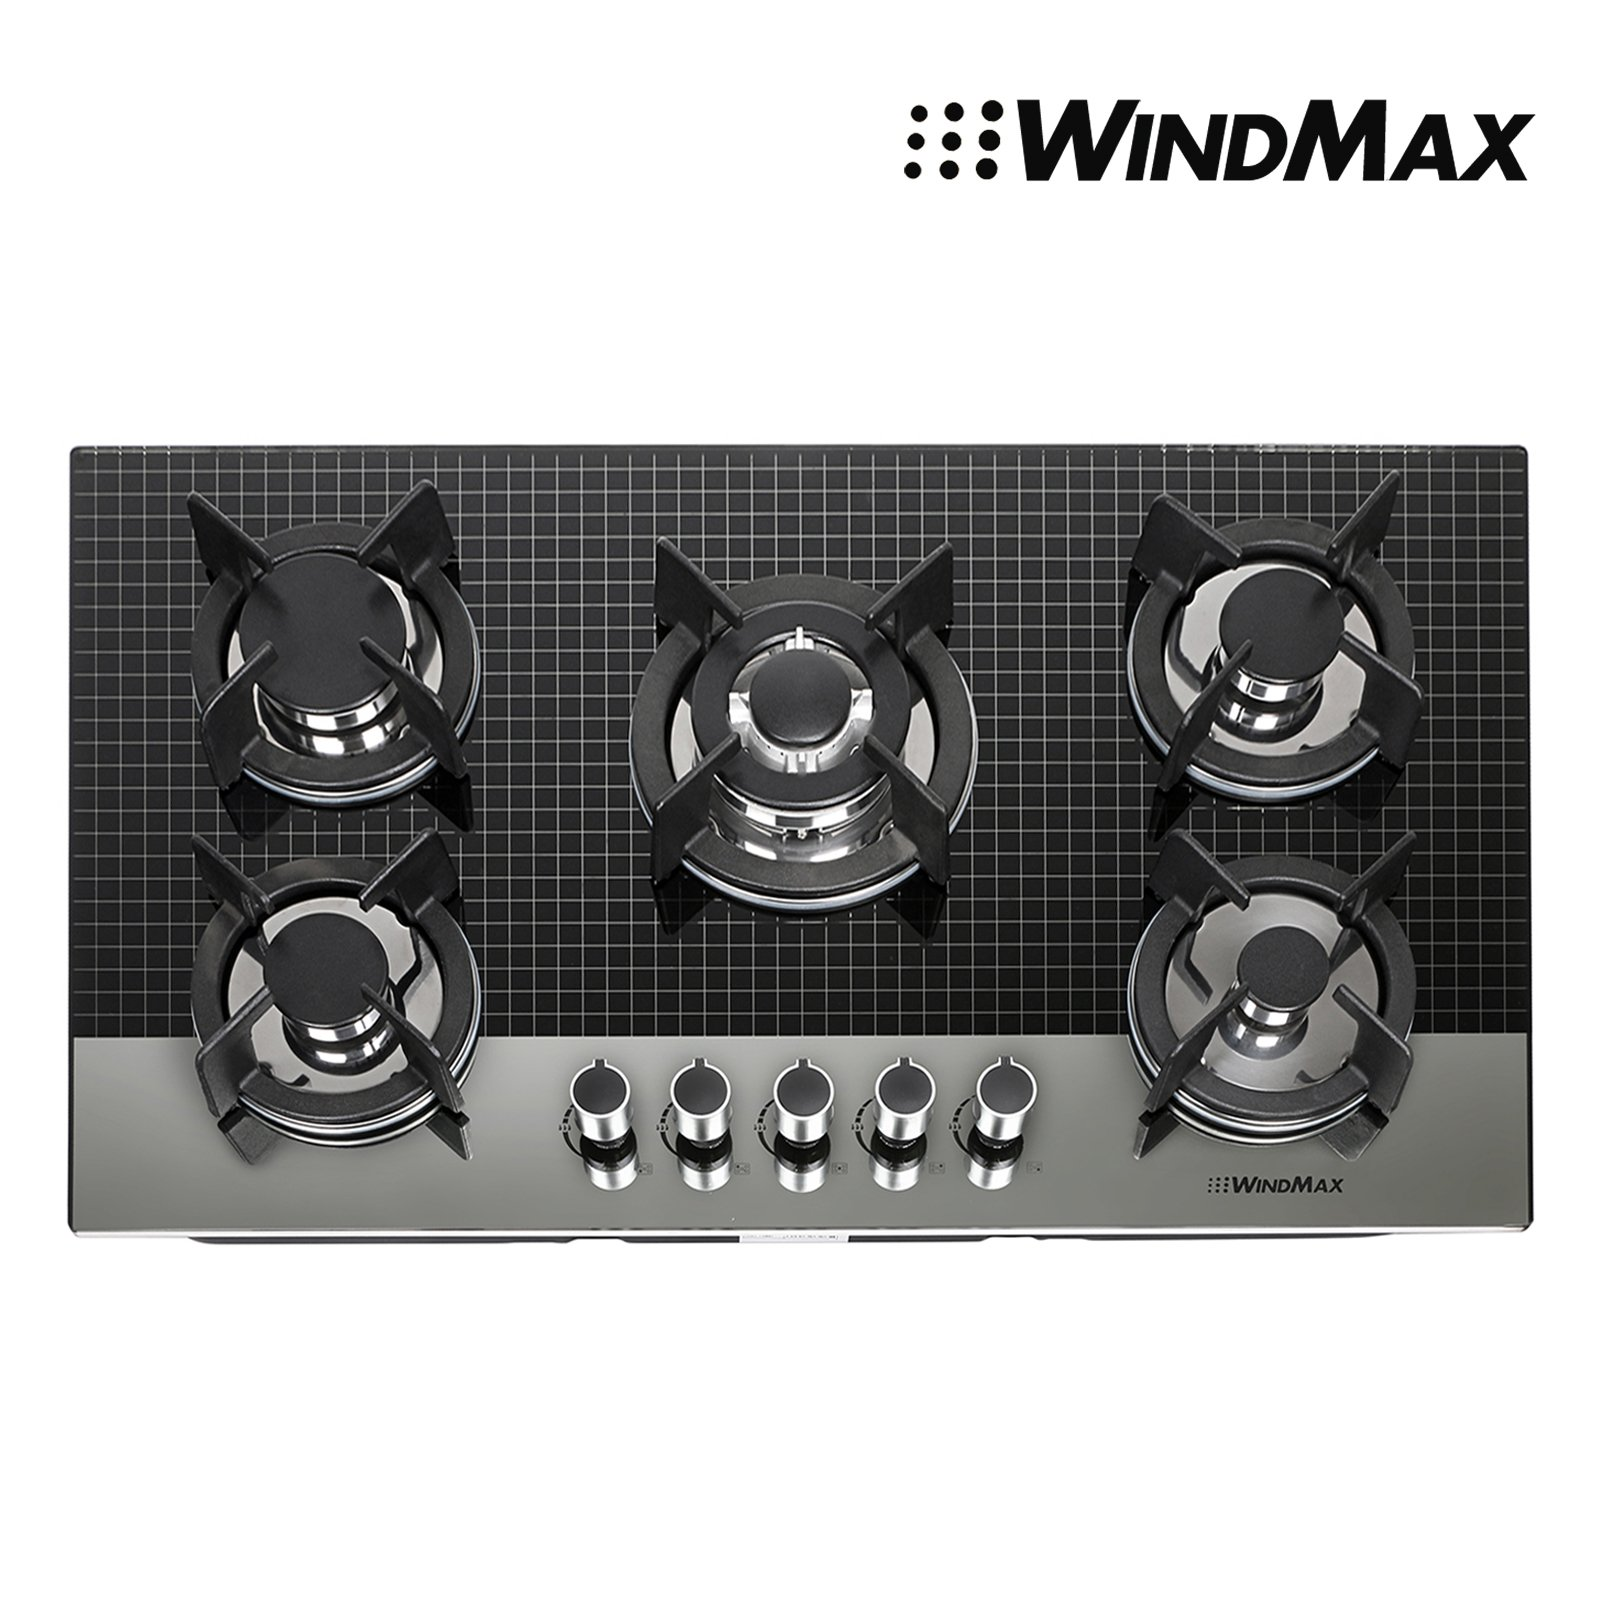 WindMax 30 Black Titanium Stainless Steel 5 Burner Built-In Stoves Gas Cooktop Cooker Appliances